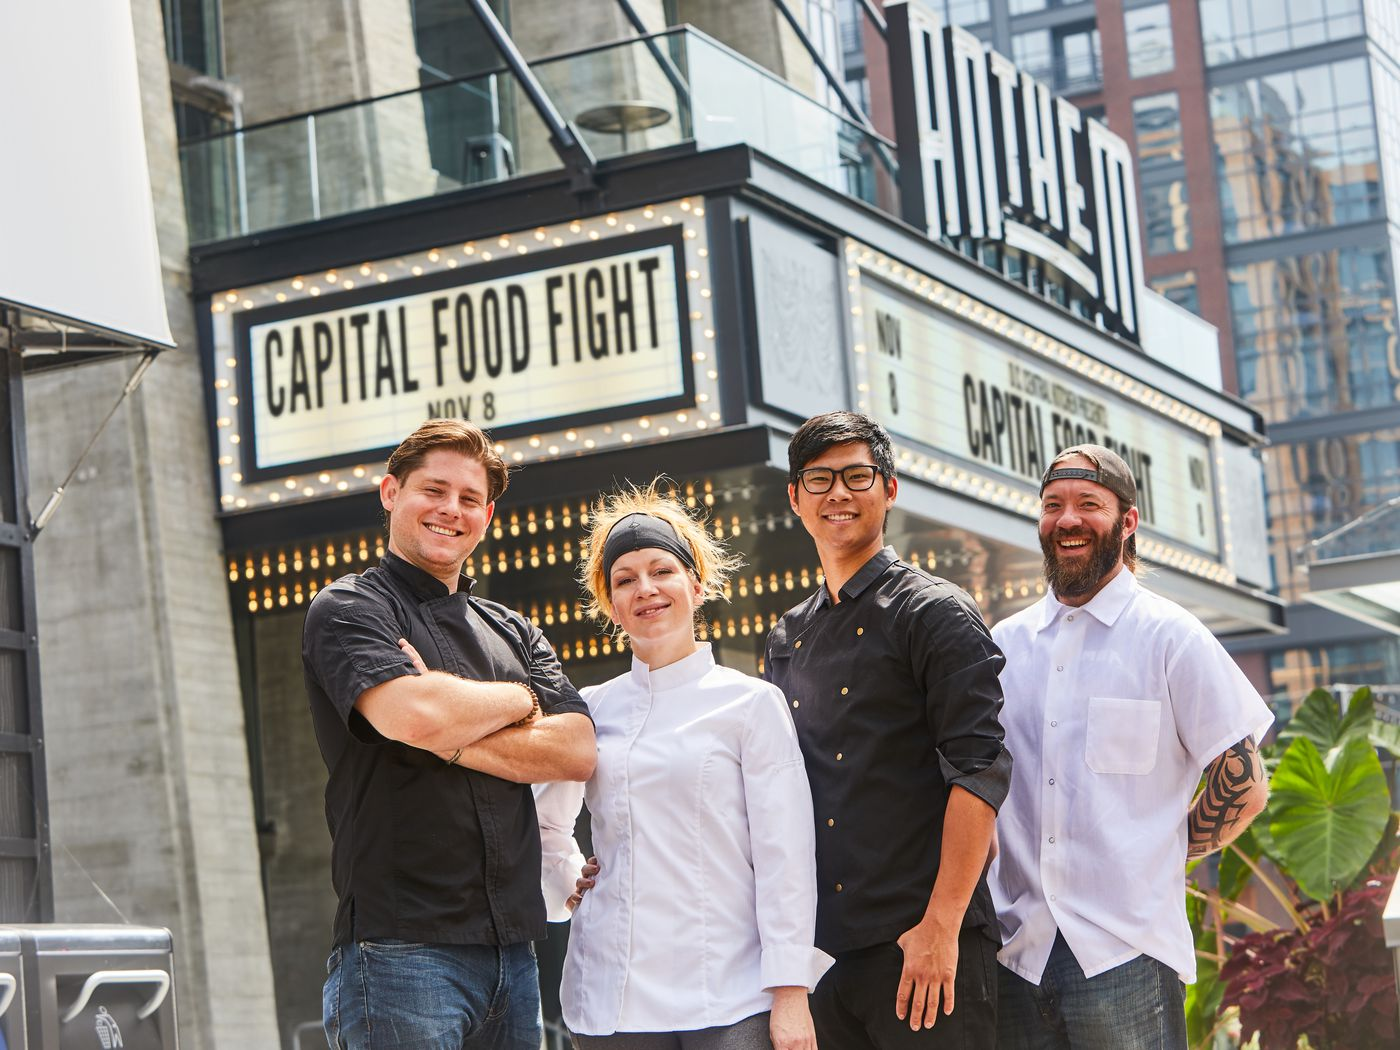 DC Central Kitchen's Capital Food Fight Enlists Tom Colicchio and